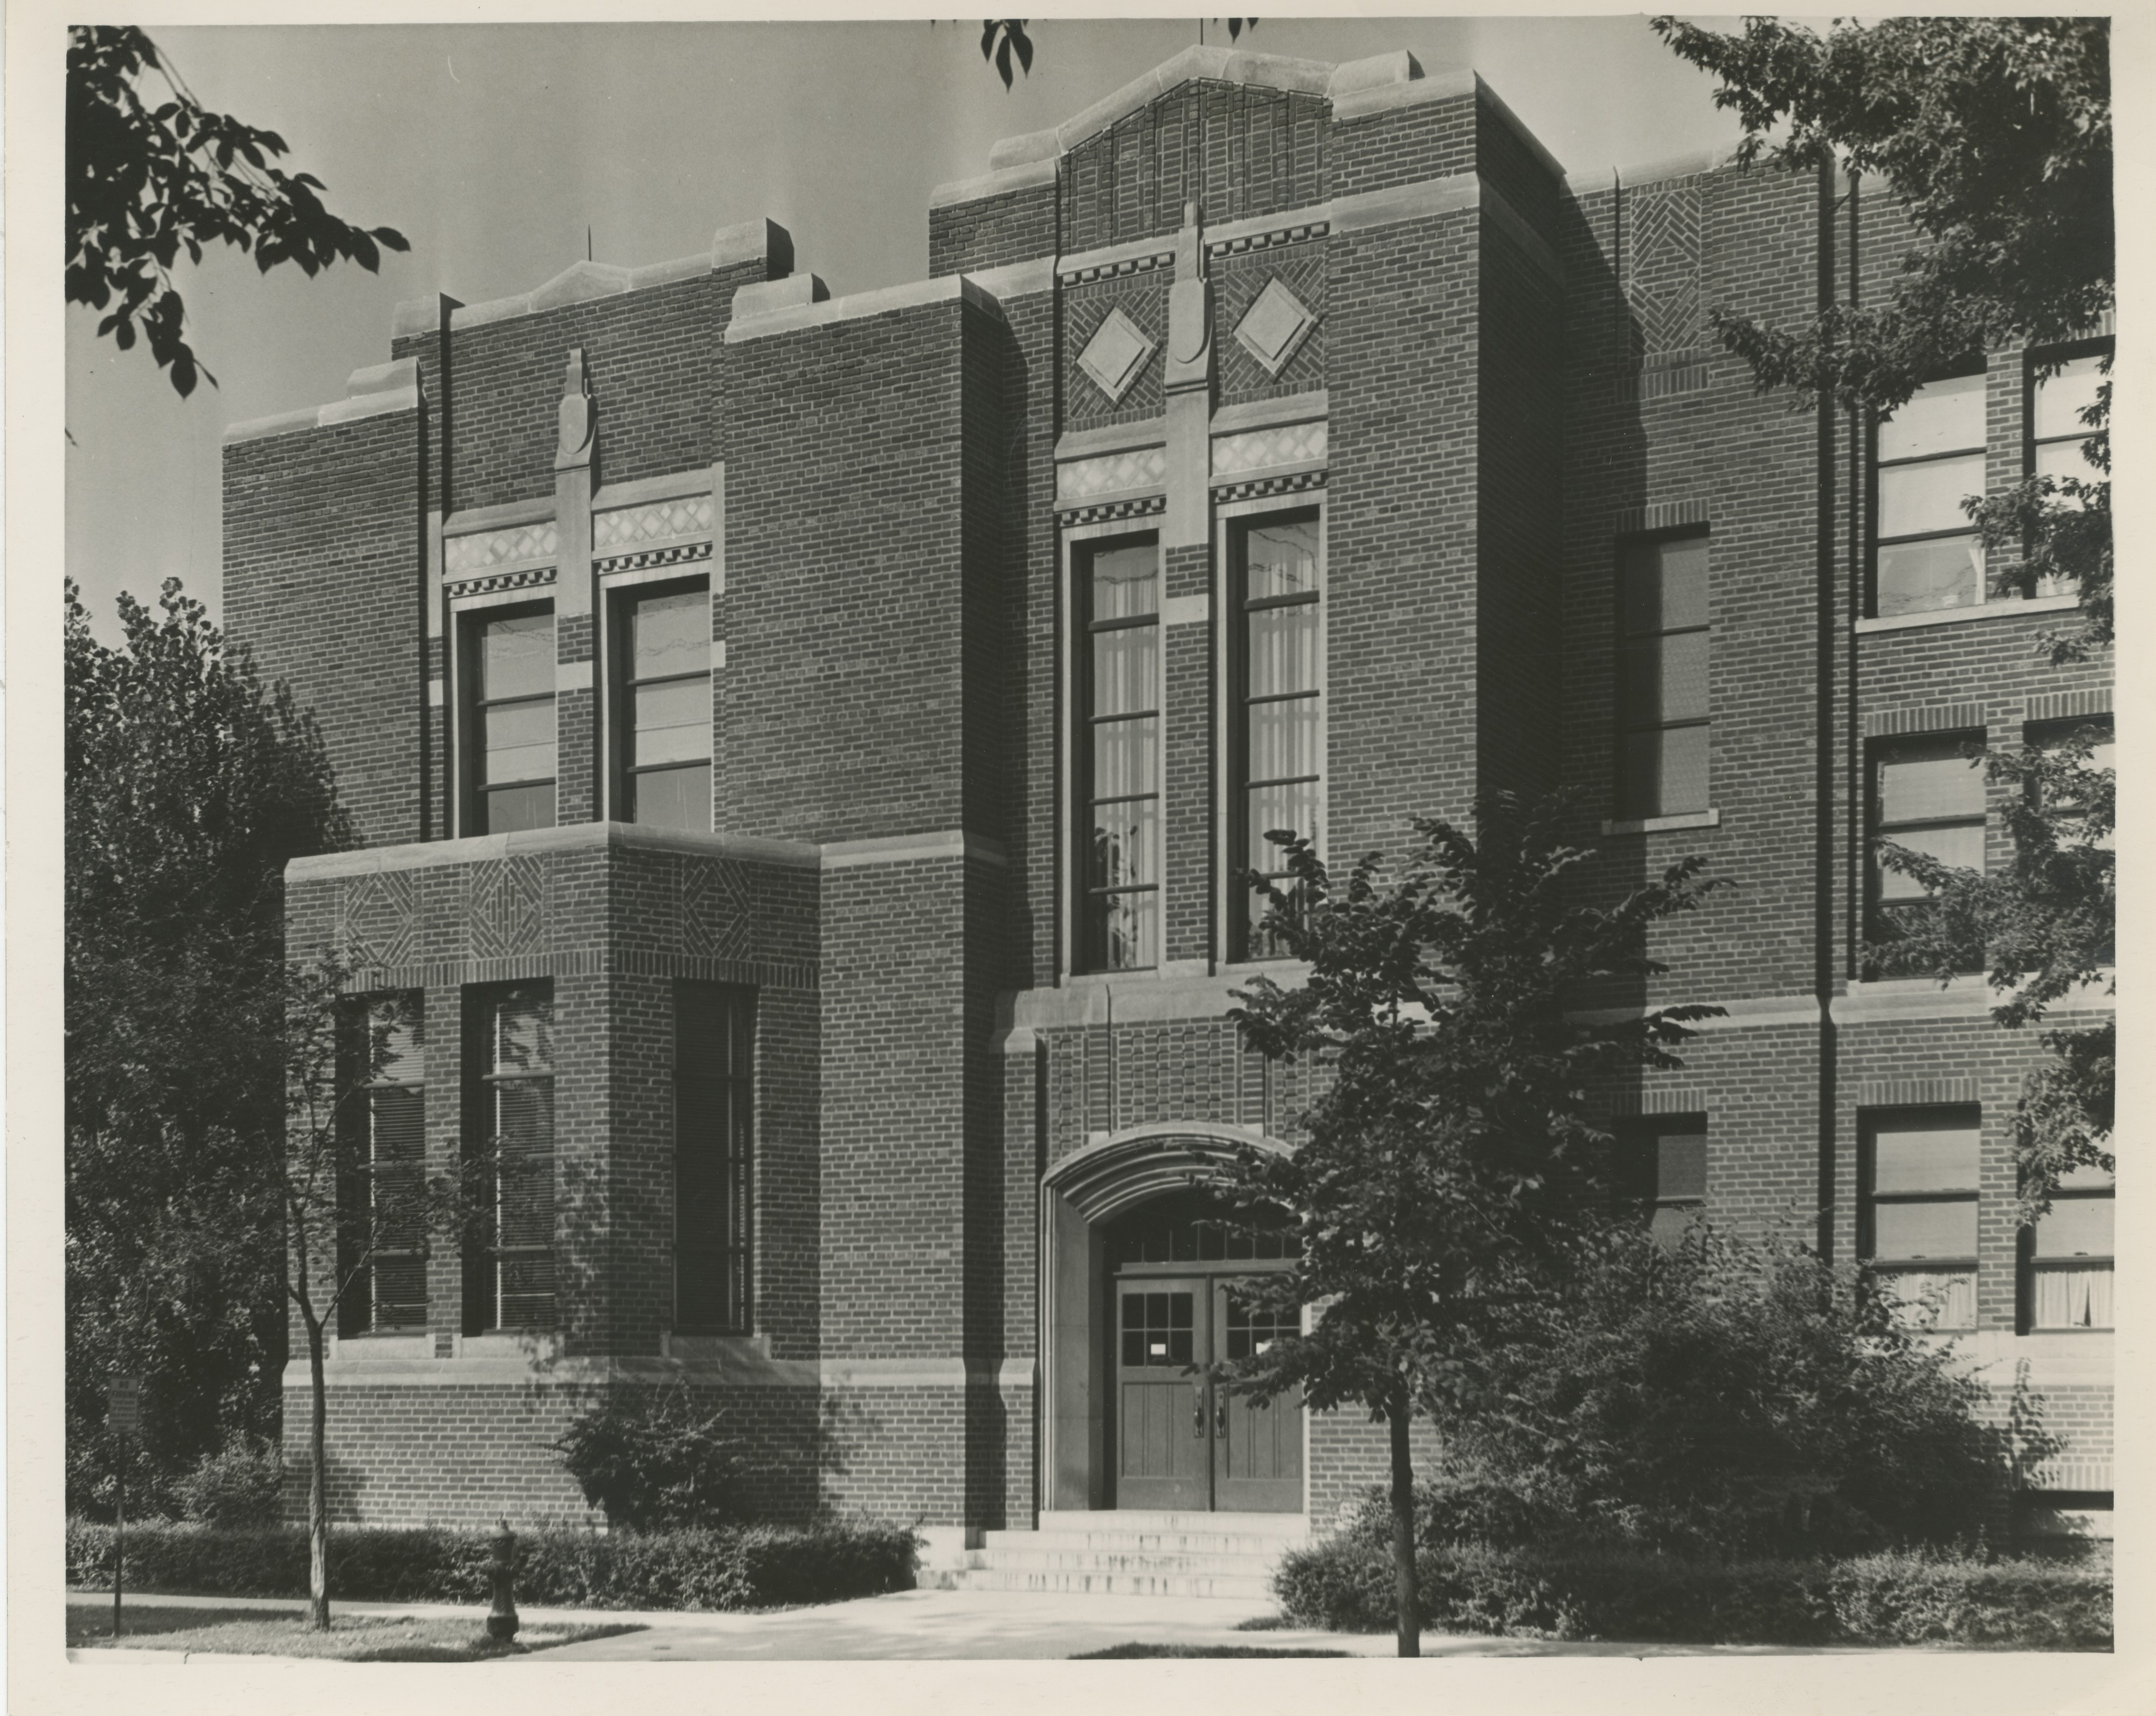 University Elementary School at the University of Michigan, 1937 image